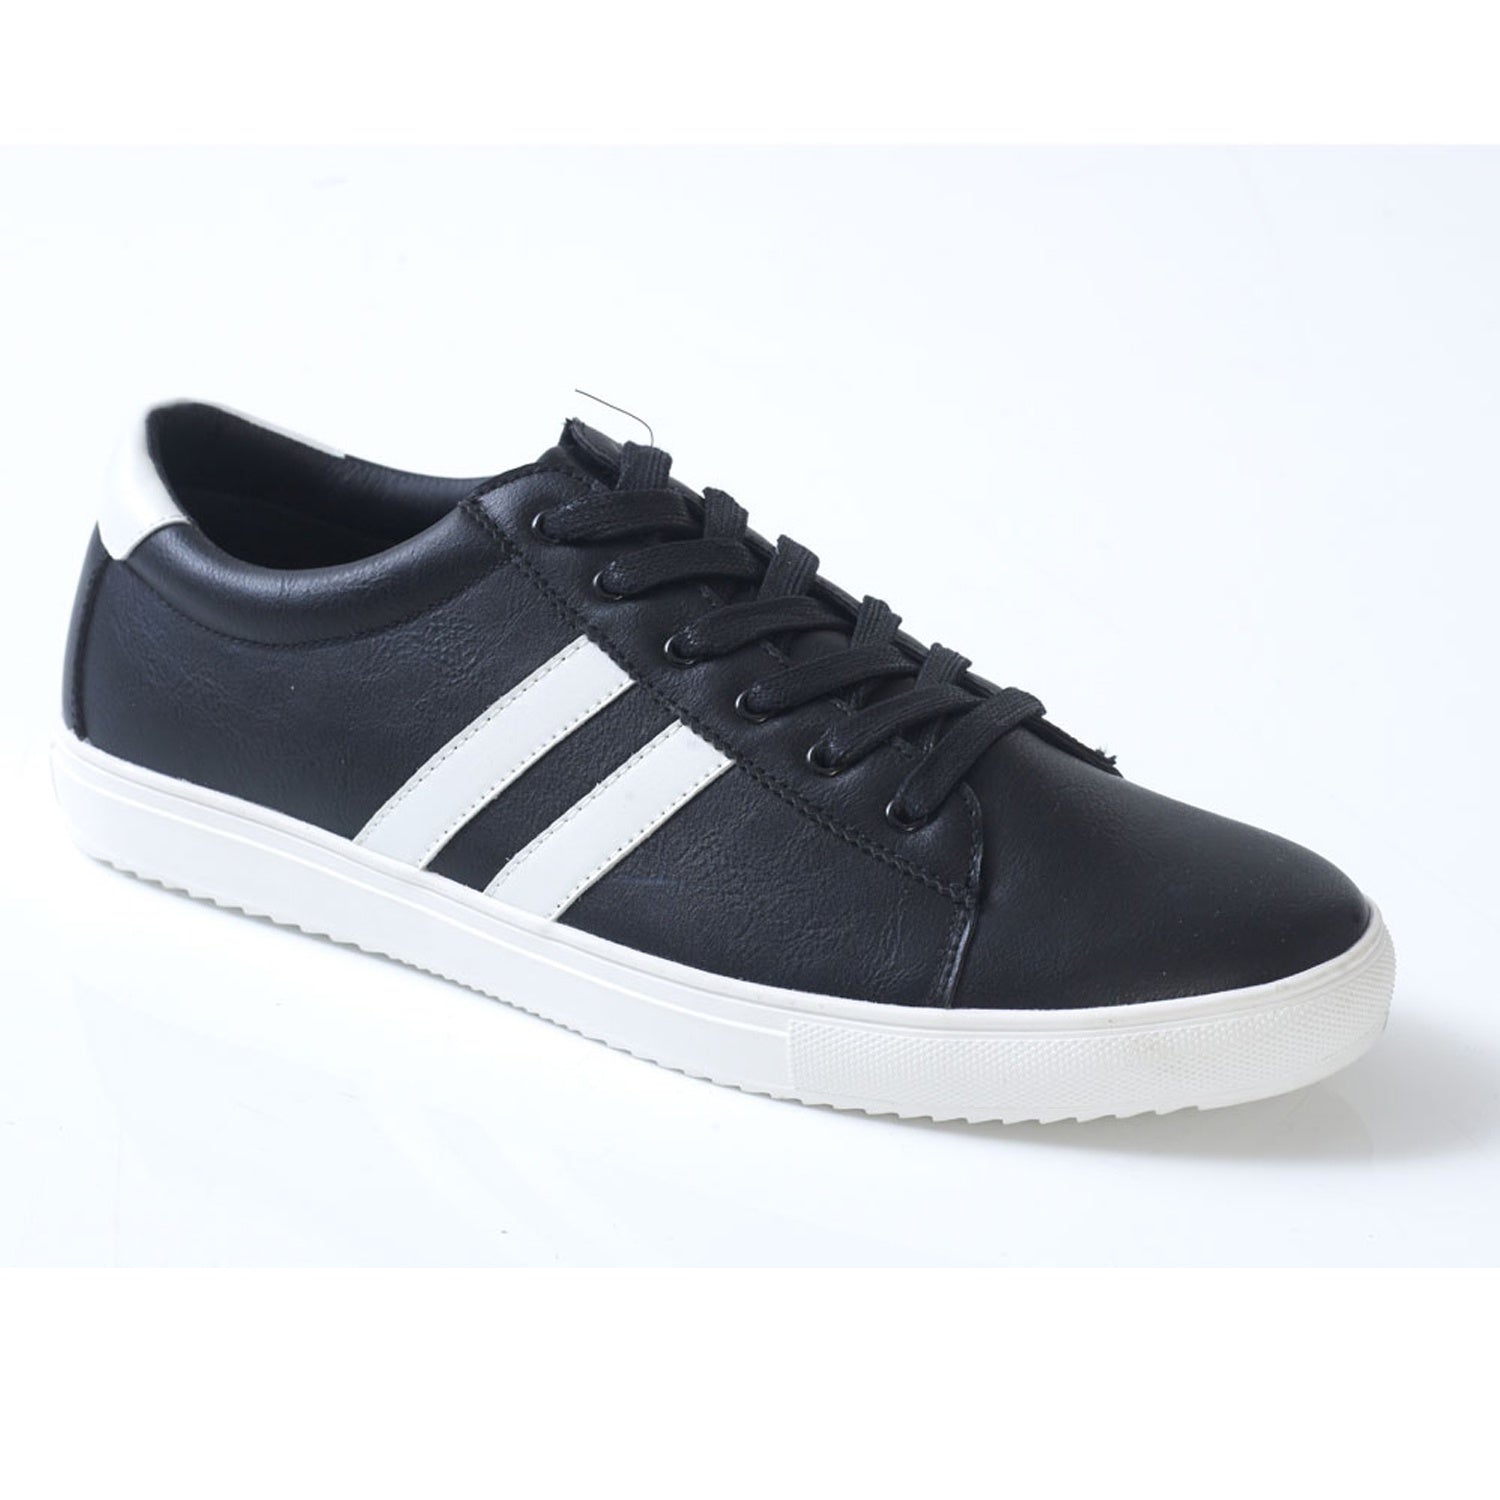 D555 Trainers - KS24109 - Floyd - Black 1